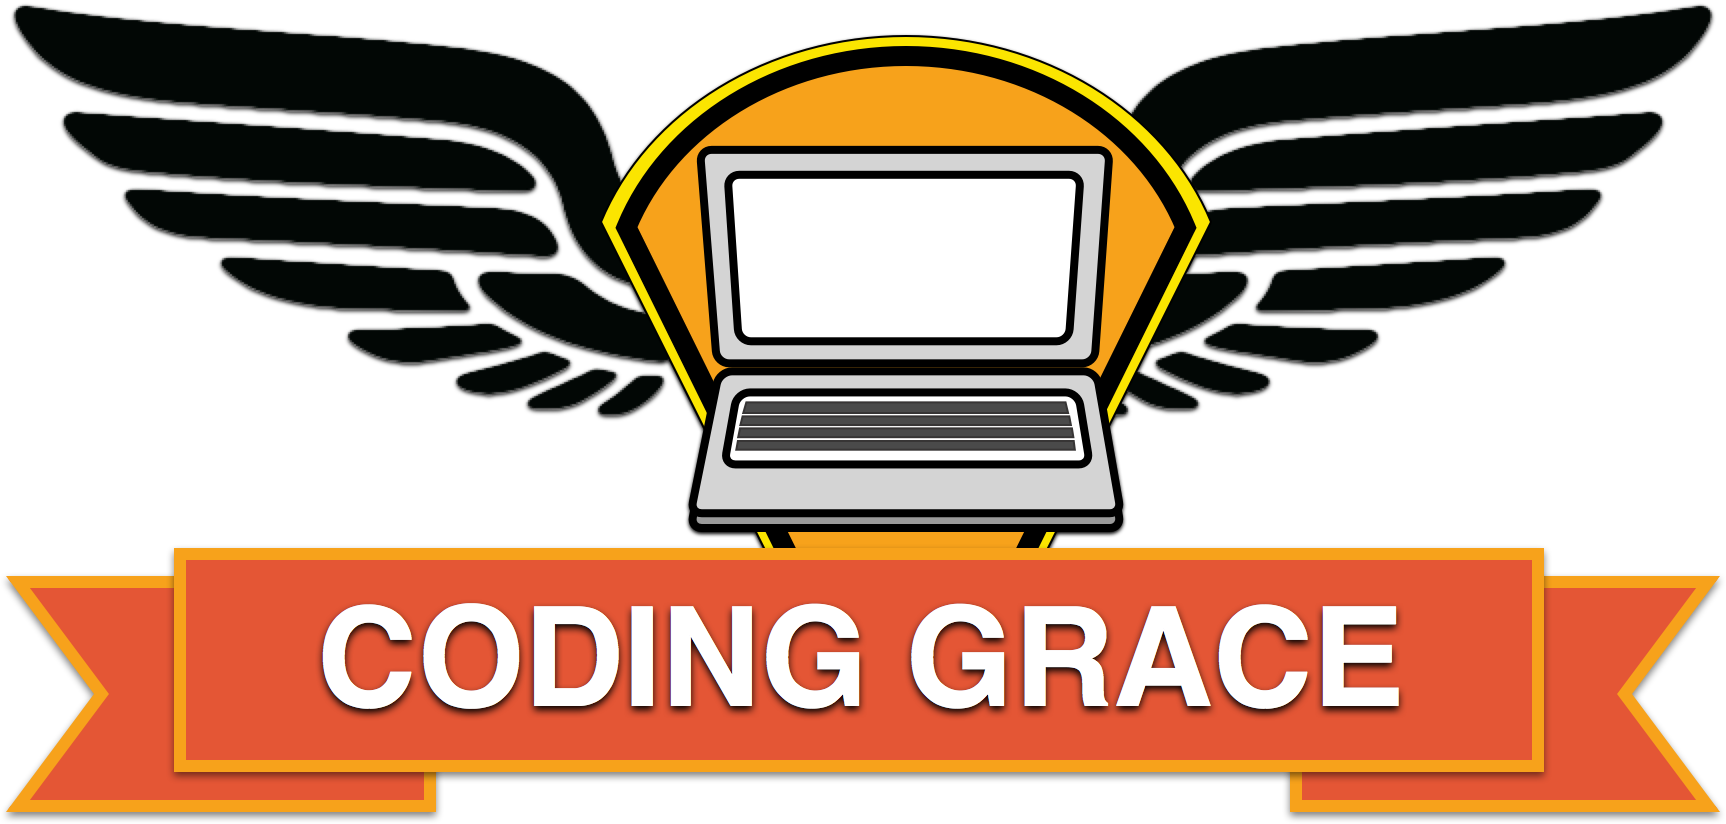 Coding grace mark ii 2x